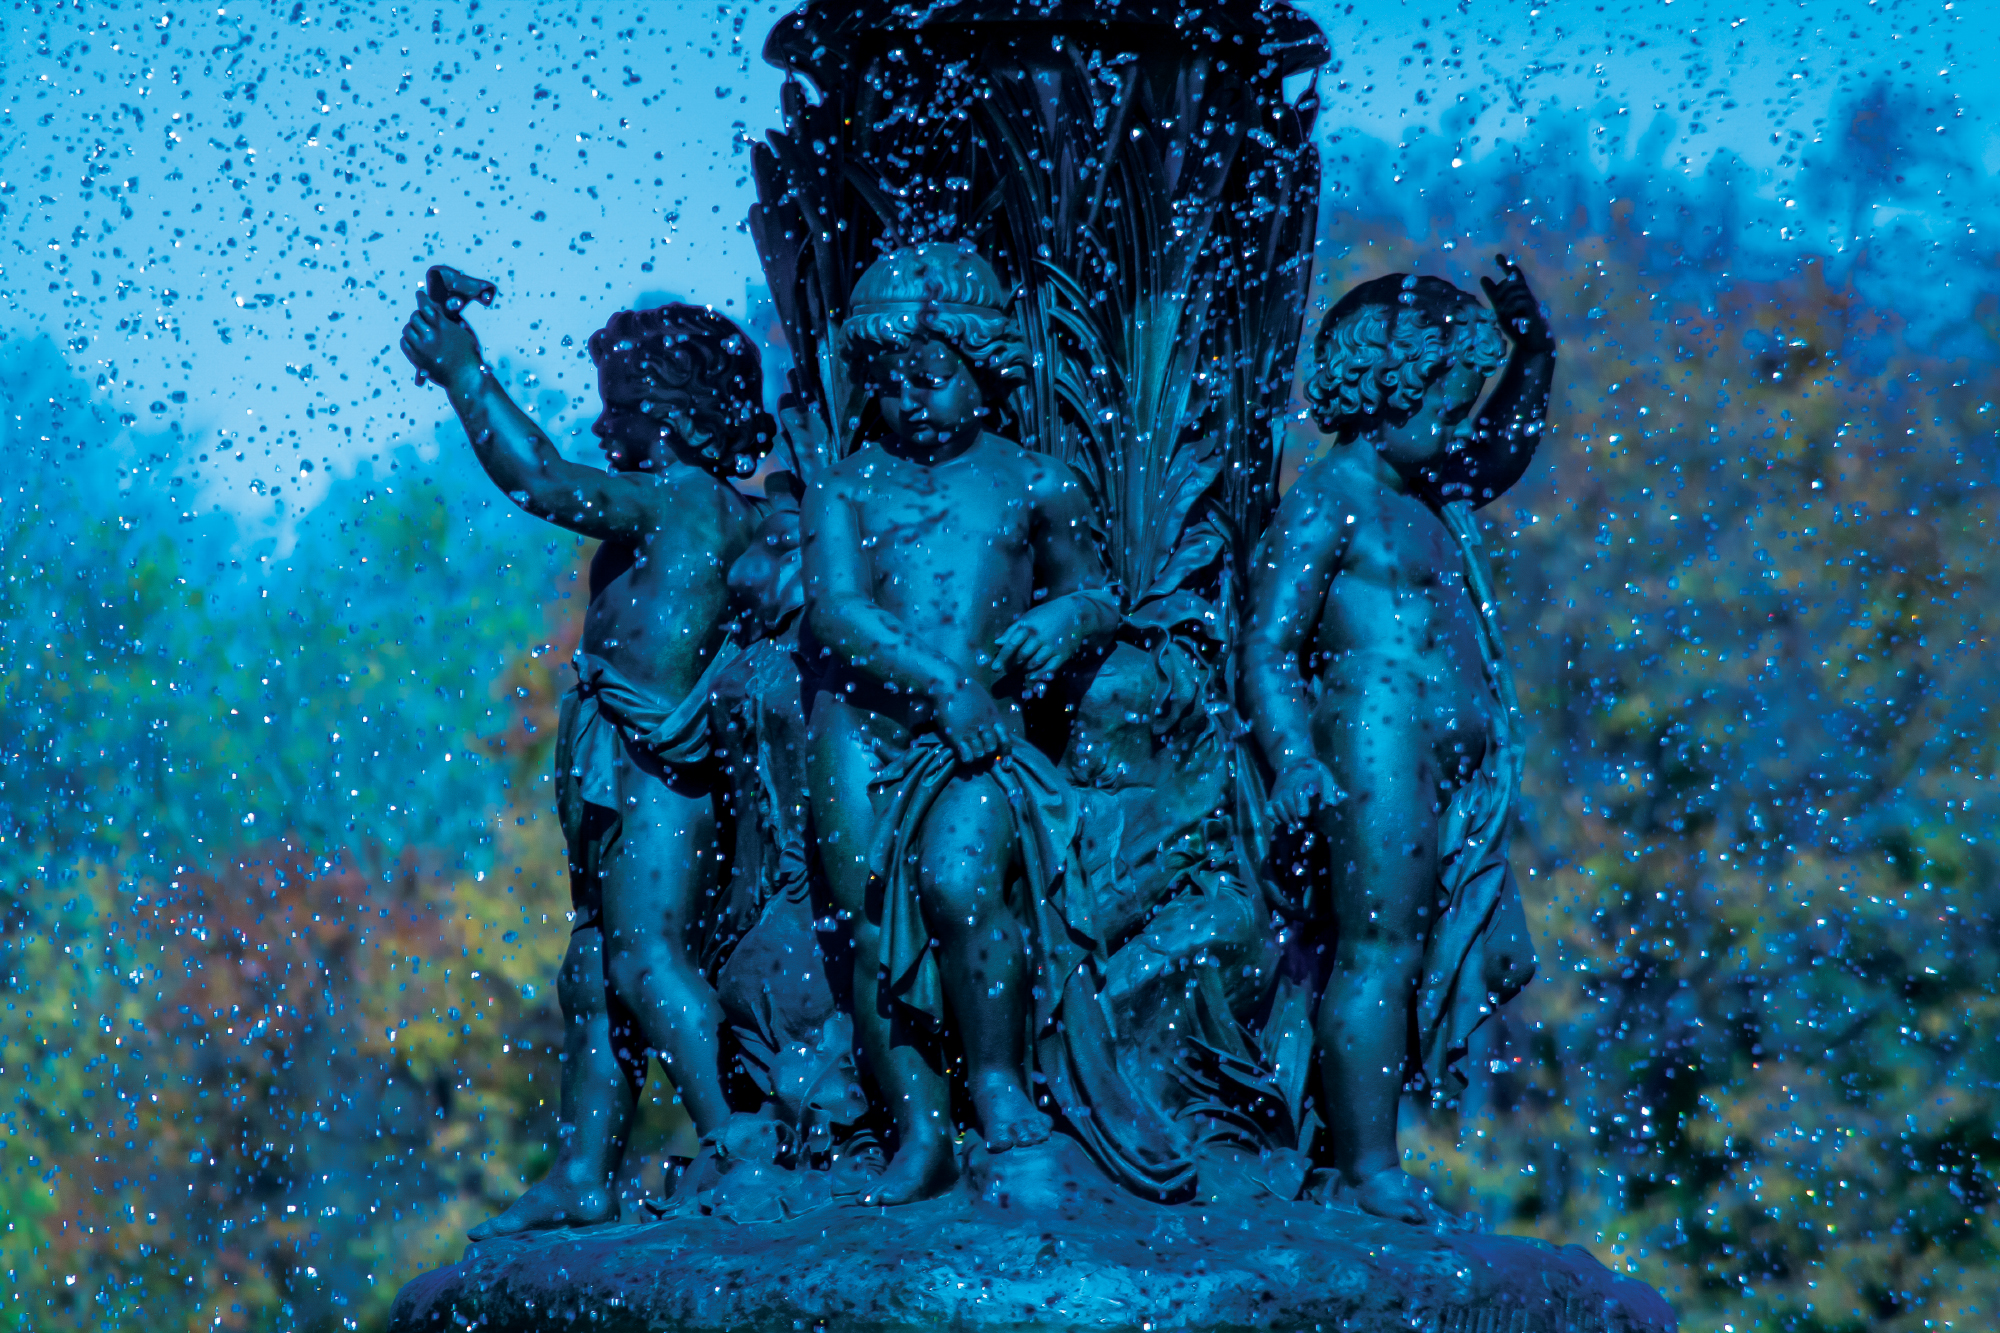 Blue tinted photograph of cherub babies from Bethesda fountain in central park. Taken in the fall in Manhattan, New York